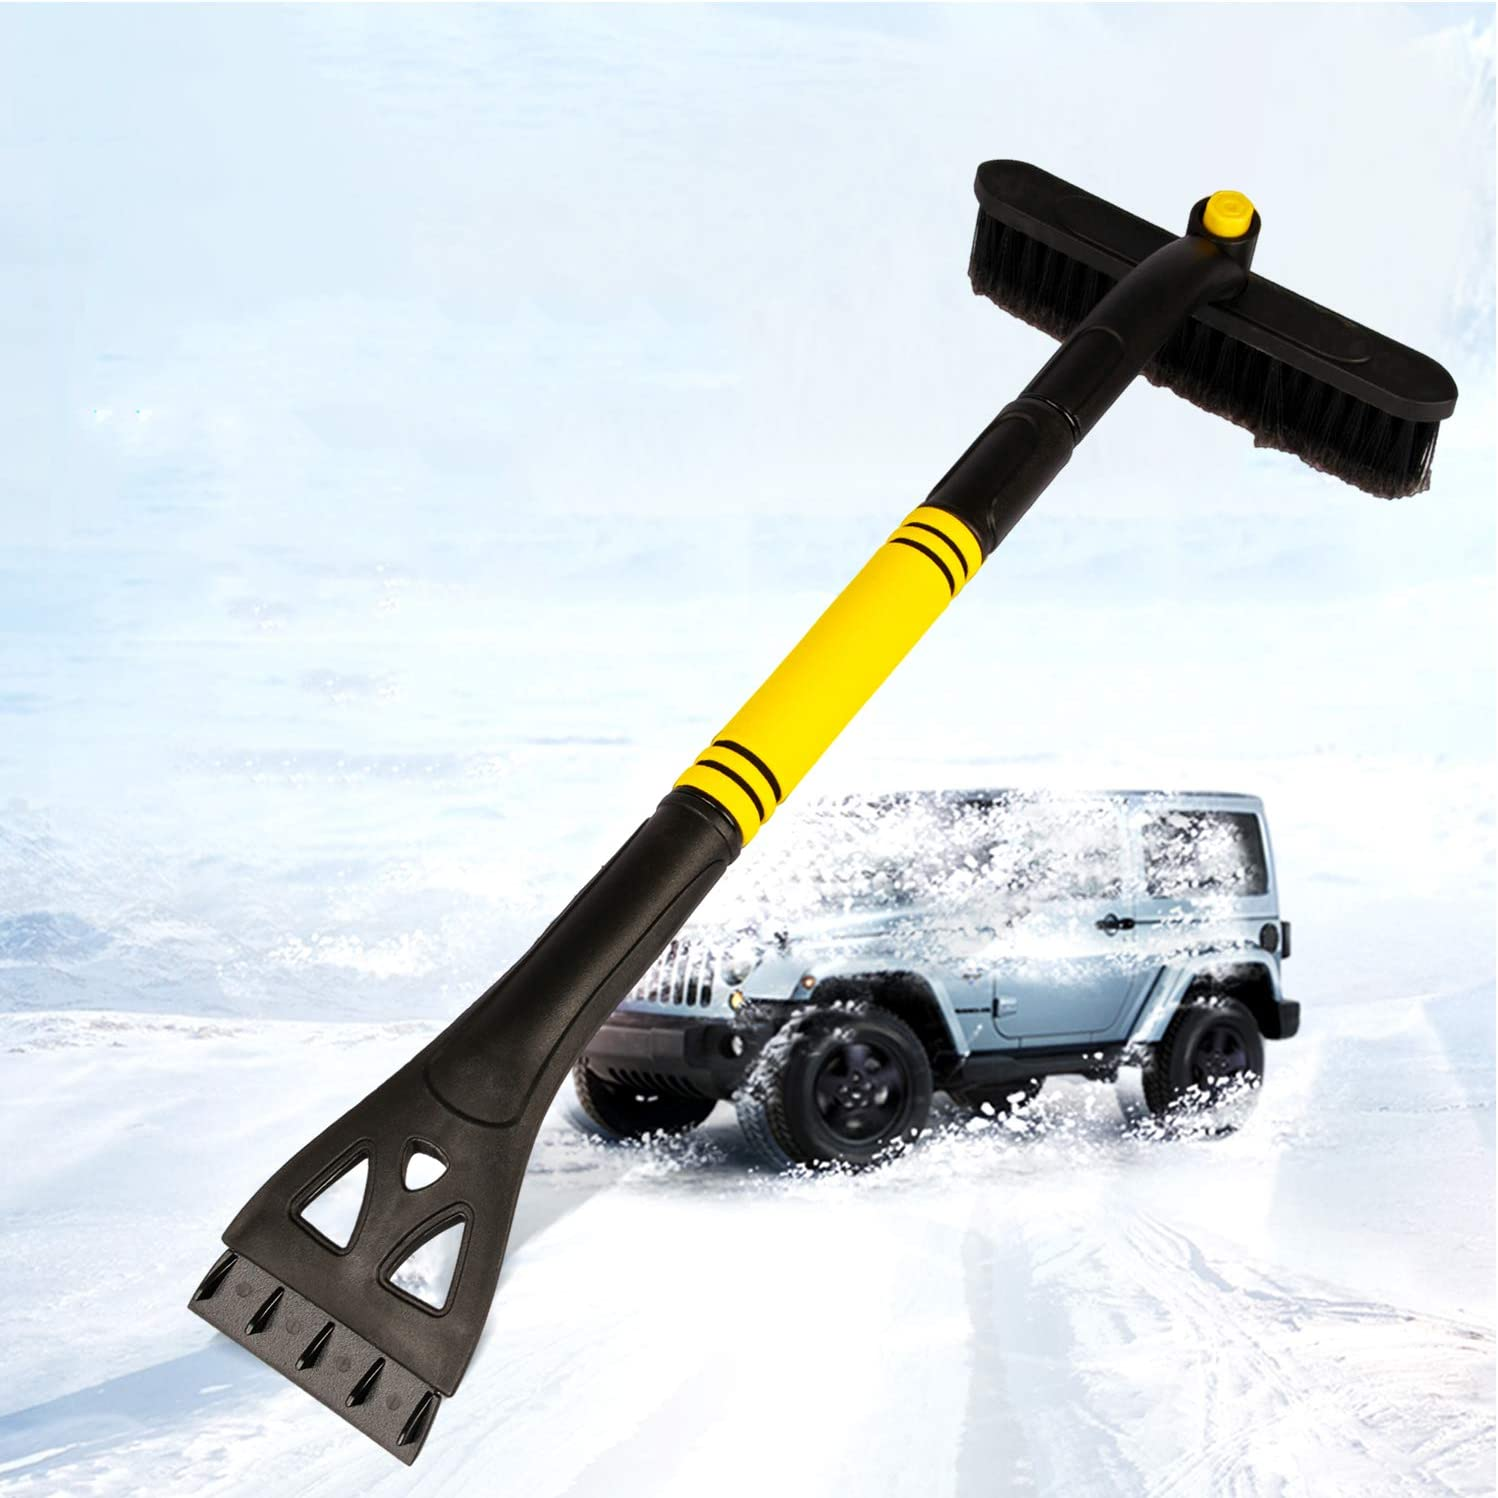 SEAAES Ice Scraper with Brush for Car Windshield Extendable Snow Brush with Foam Grip for Car Auto SUV Truck Windows